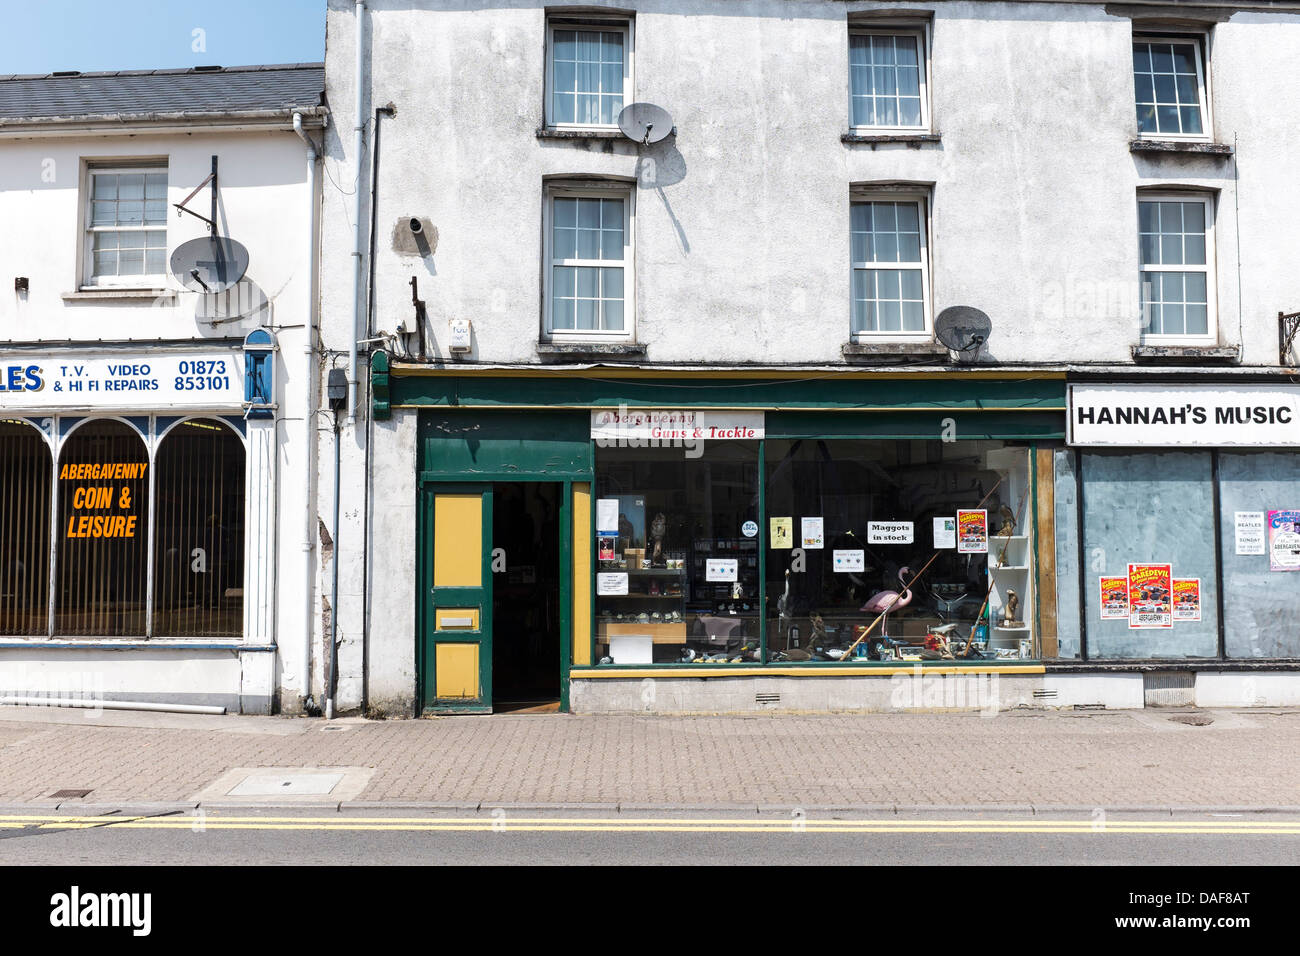 Old shop fronts in the market town of Abergavenny, Wales. - Stock Image